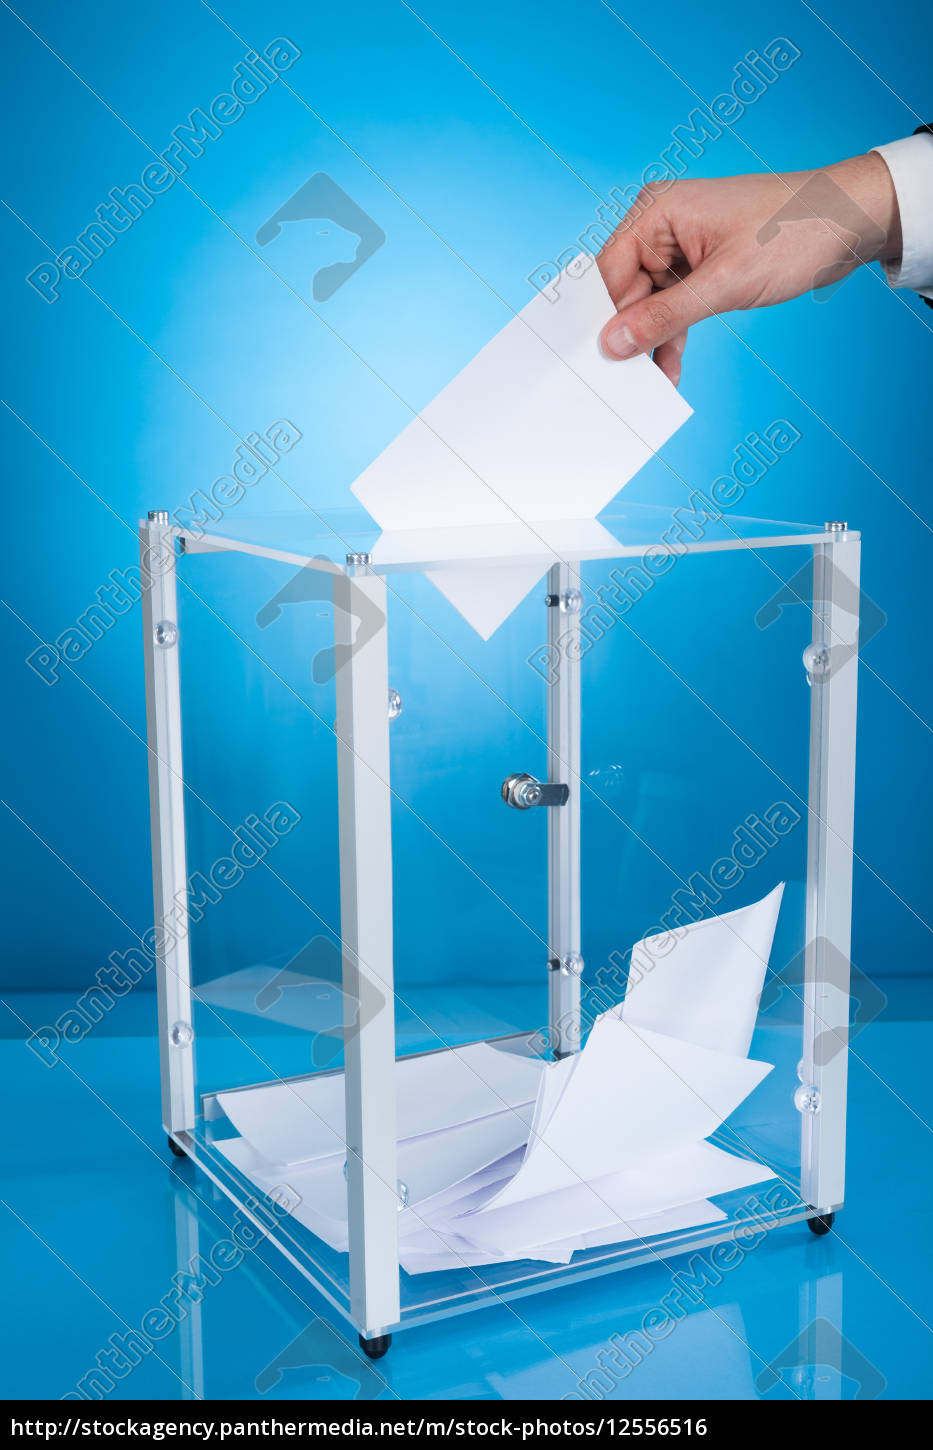 businessman, putting, paper, in, election, box - 12556516